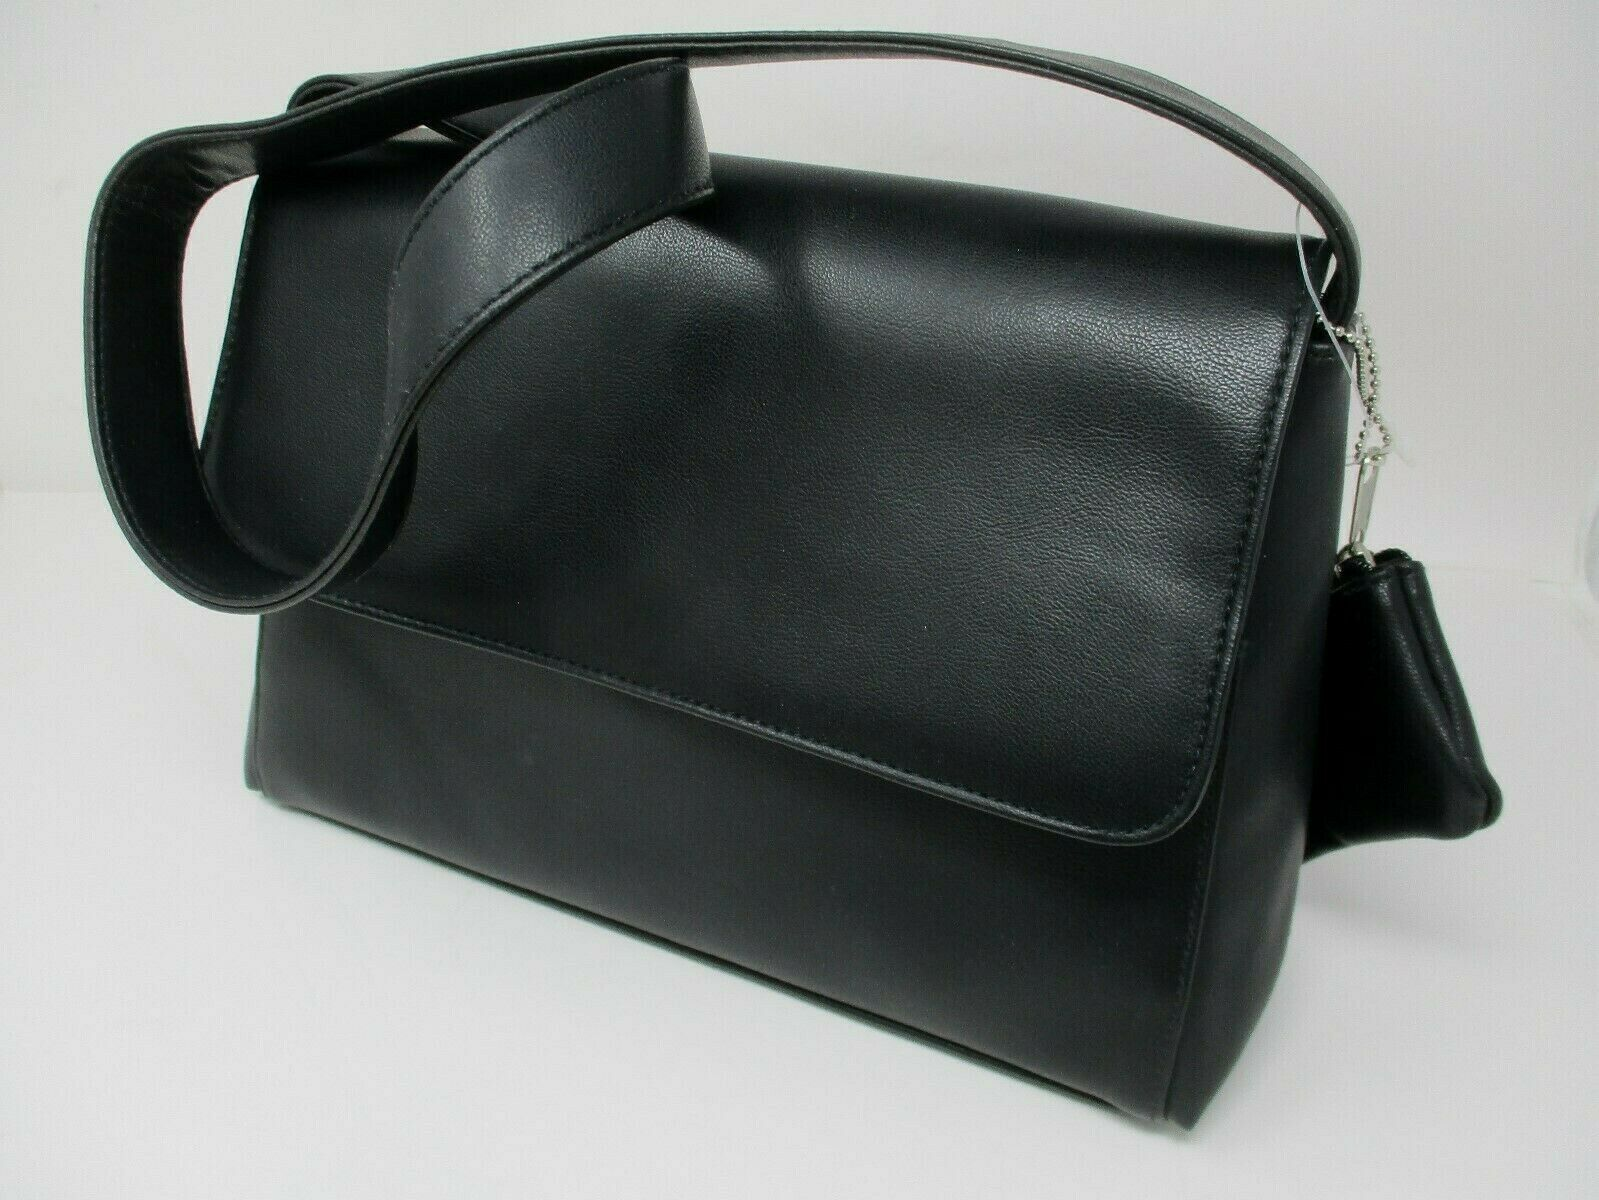 Carryland America Black Leather Classic Shoulderbag Purse New With Tags